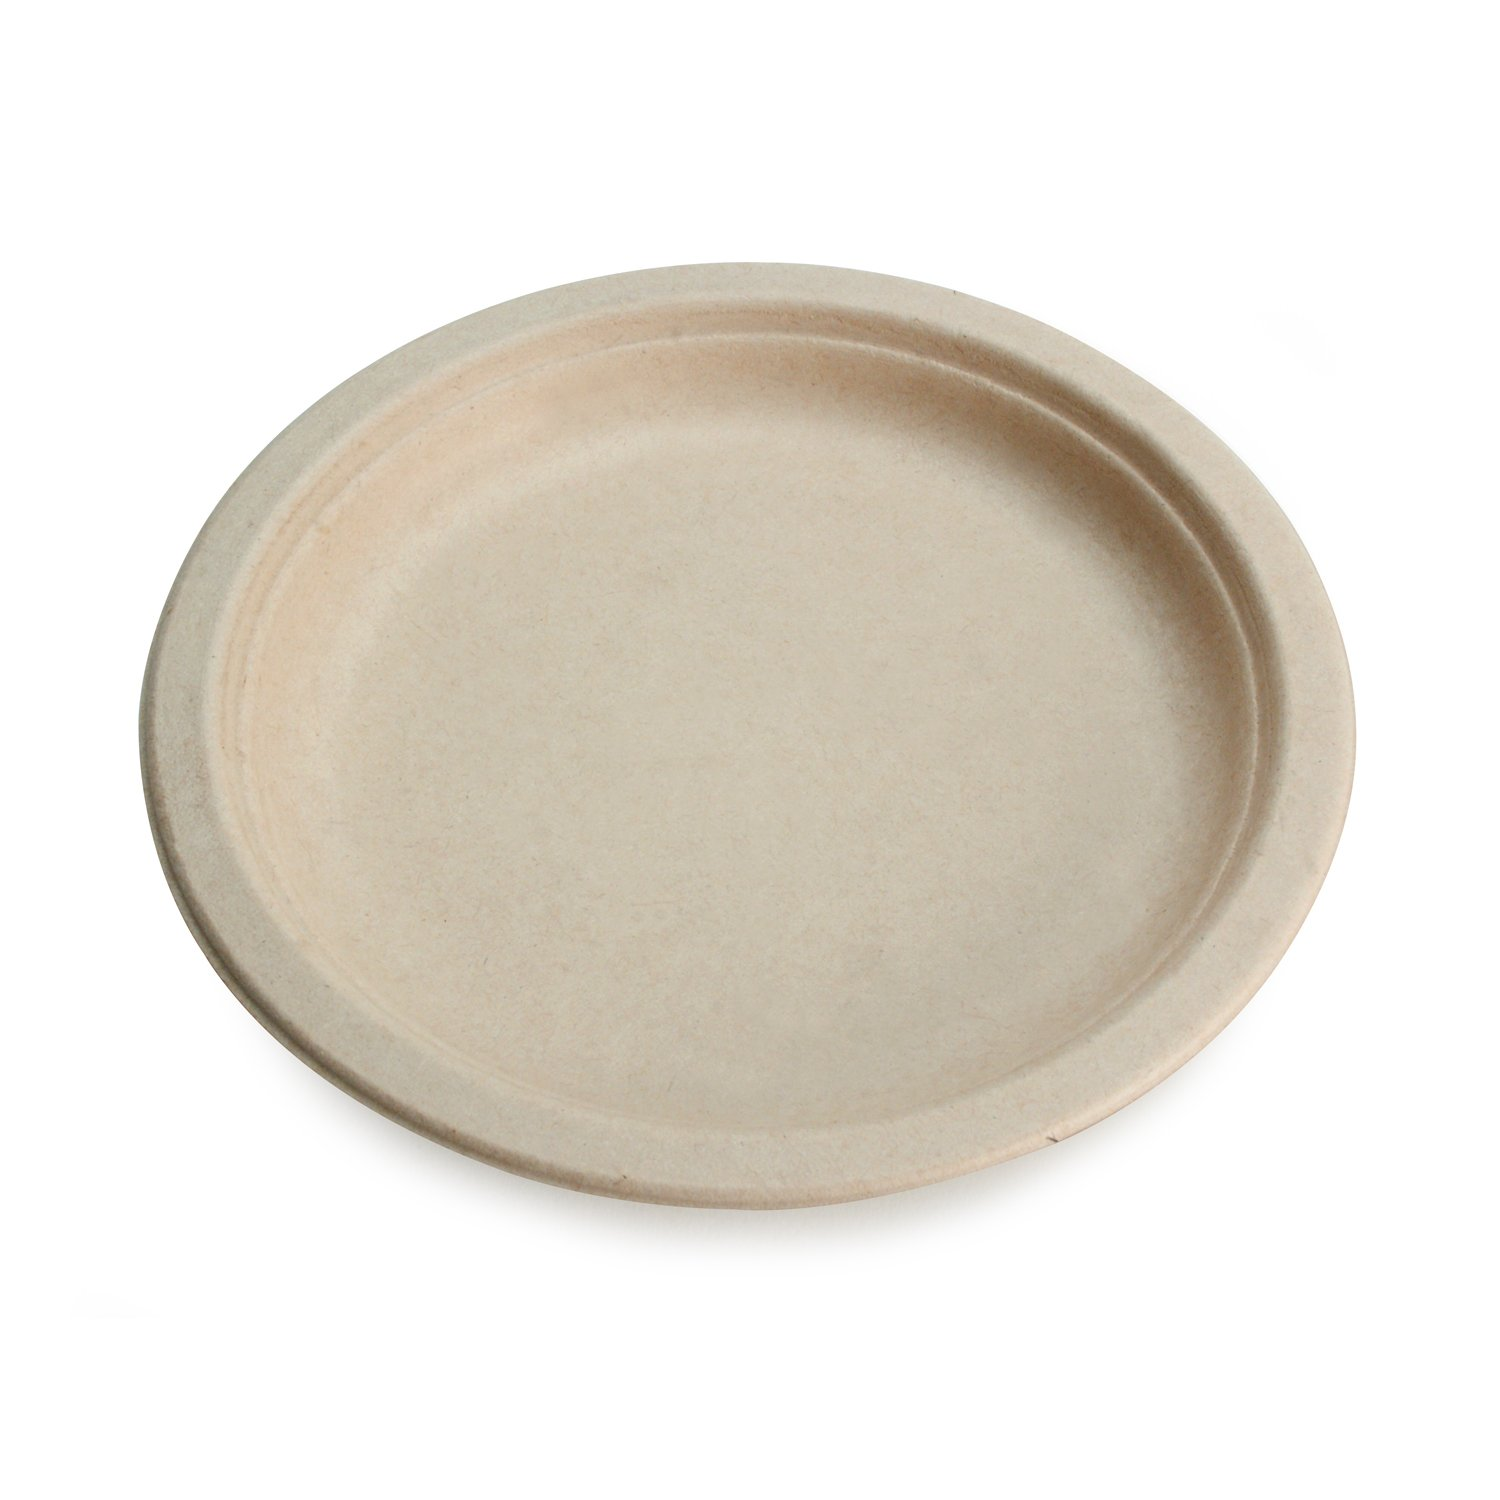 """Earth's Natural Alternative ECOL003pk160 Eco-Friendly, Compostable Plant Fiber 10"""" Plate, Natural, 20 Count, Tan"""